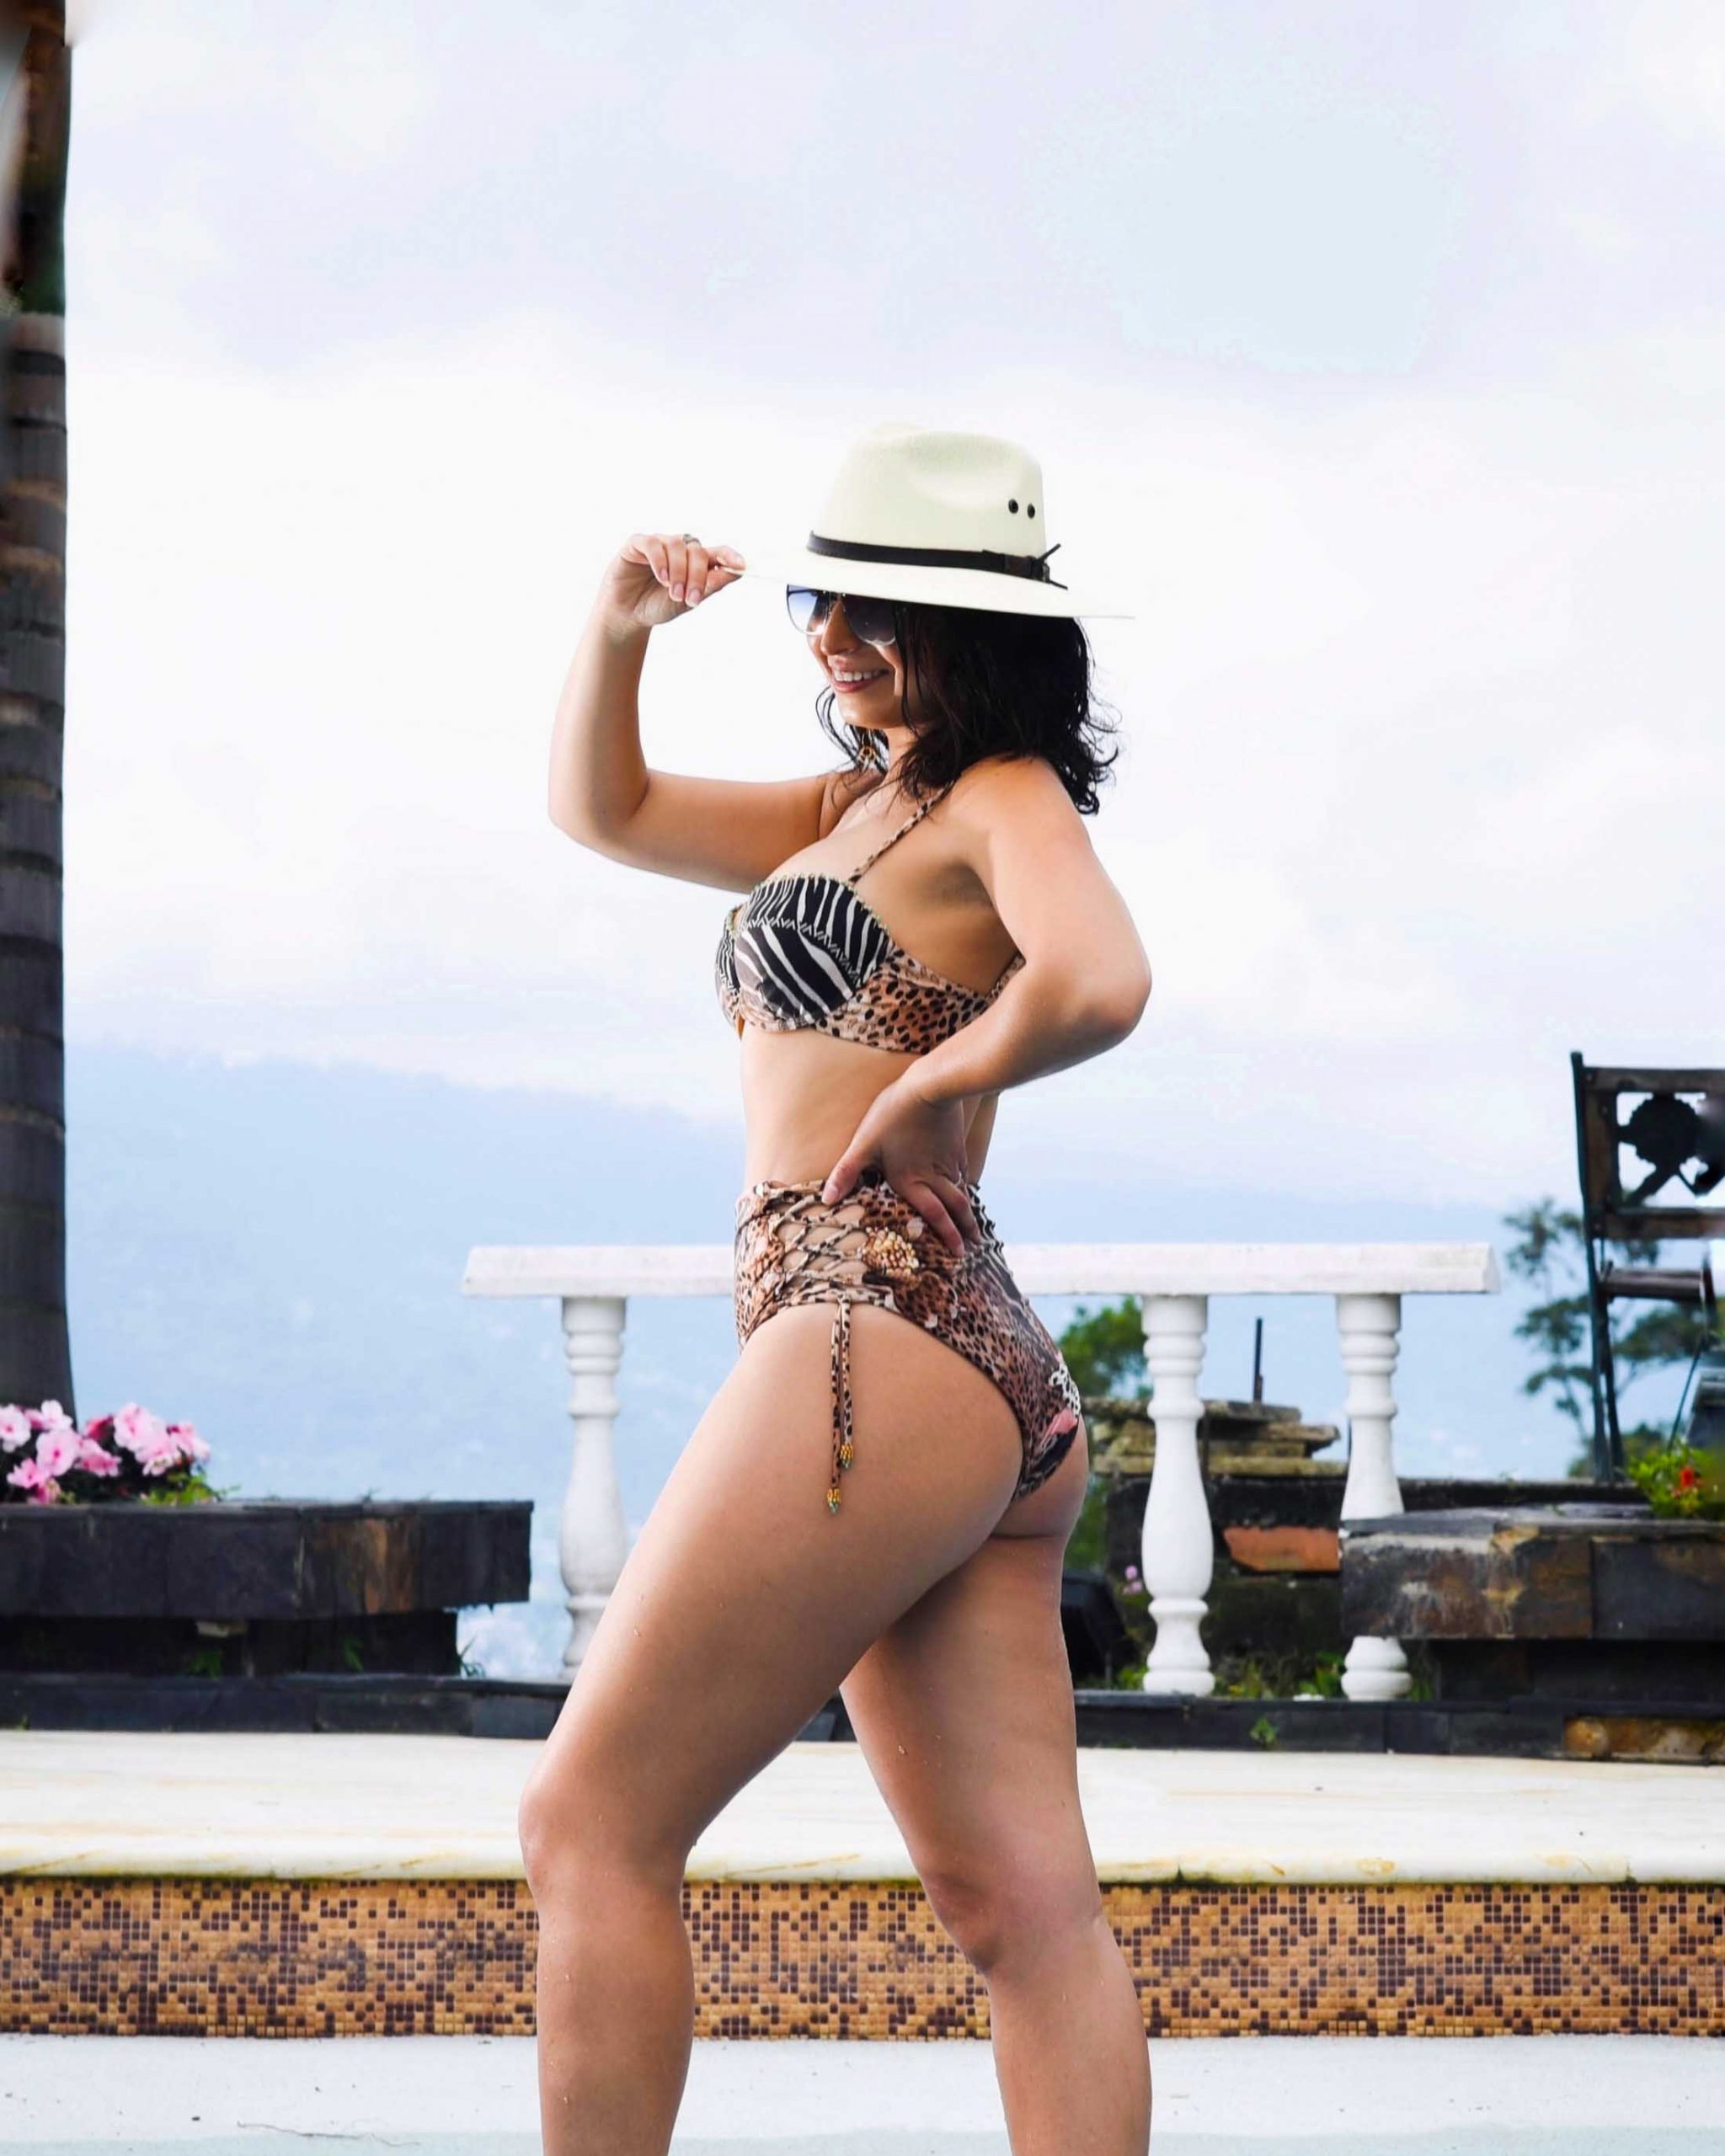 I'm proud to introduce you to Agua Bendita, a Colombian brand that makes beautiful swimwear. The lace-up of these high-rise bottoms adjust to different body shapes.